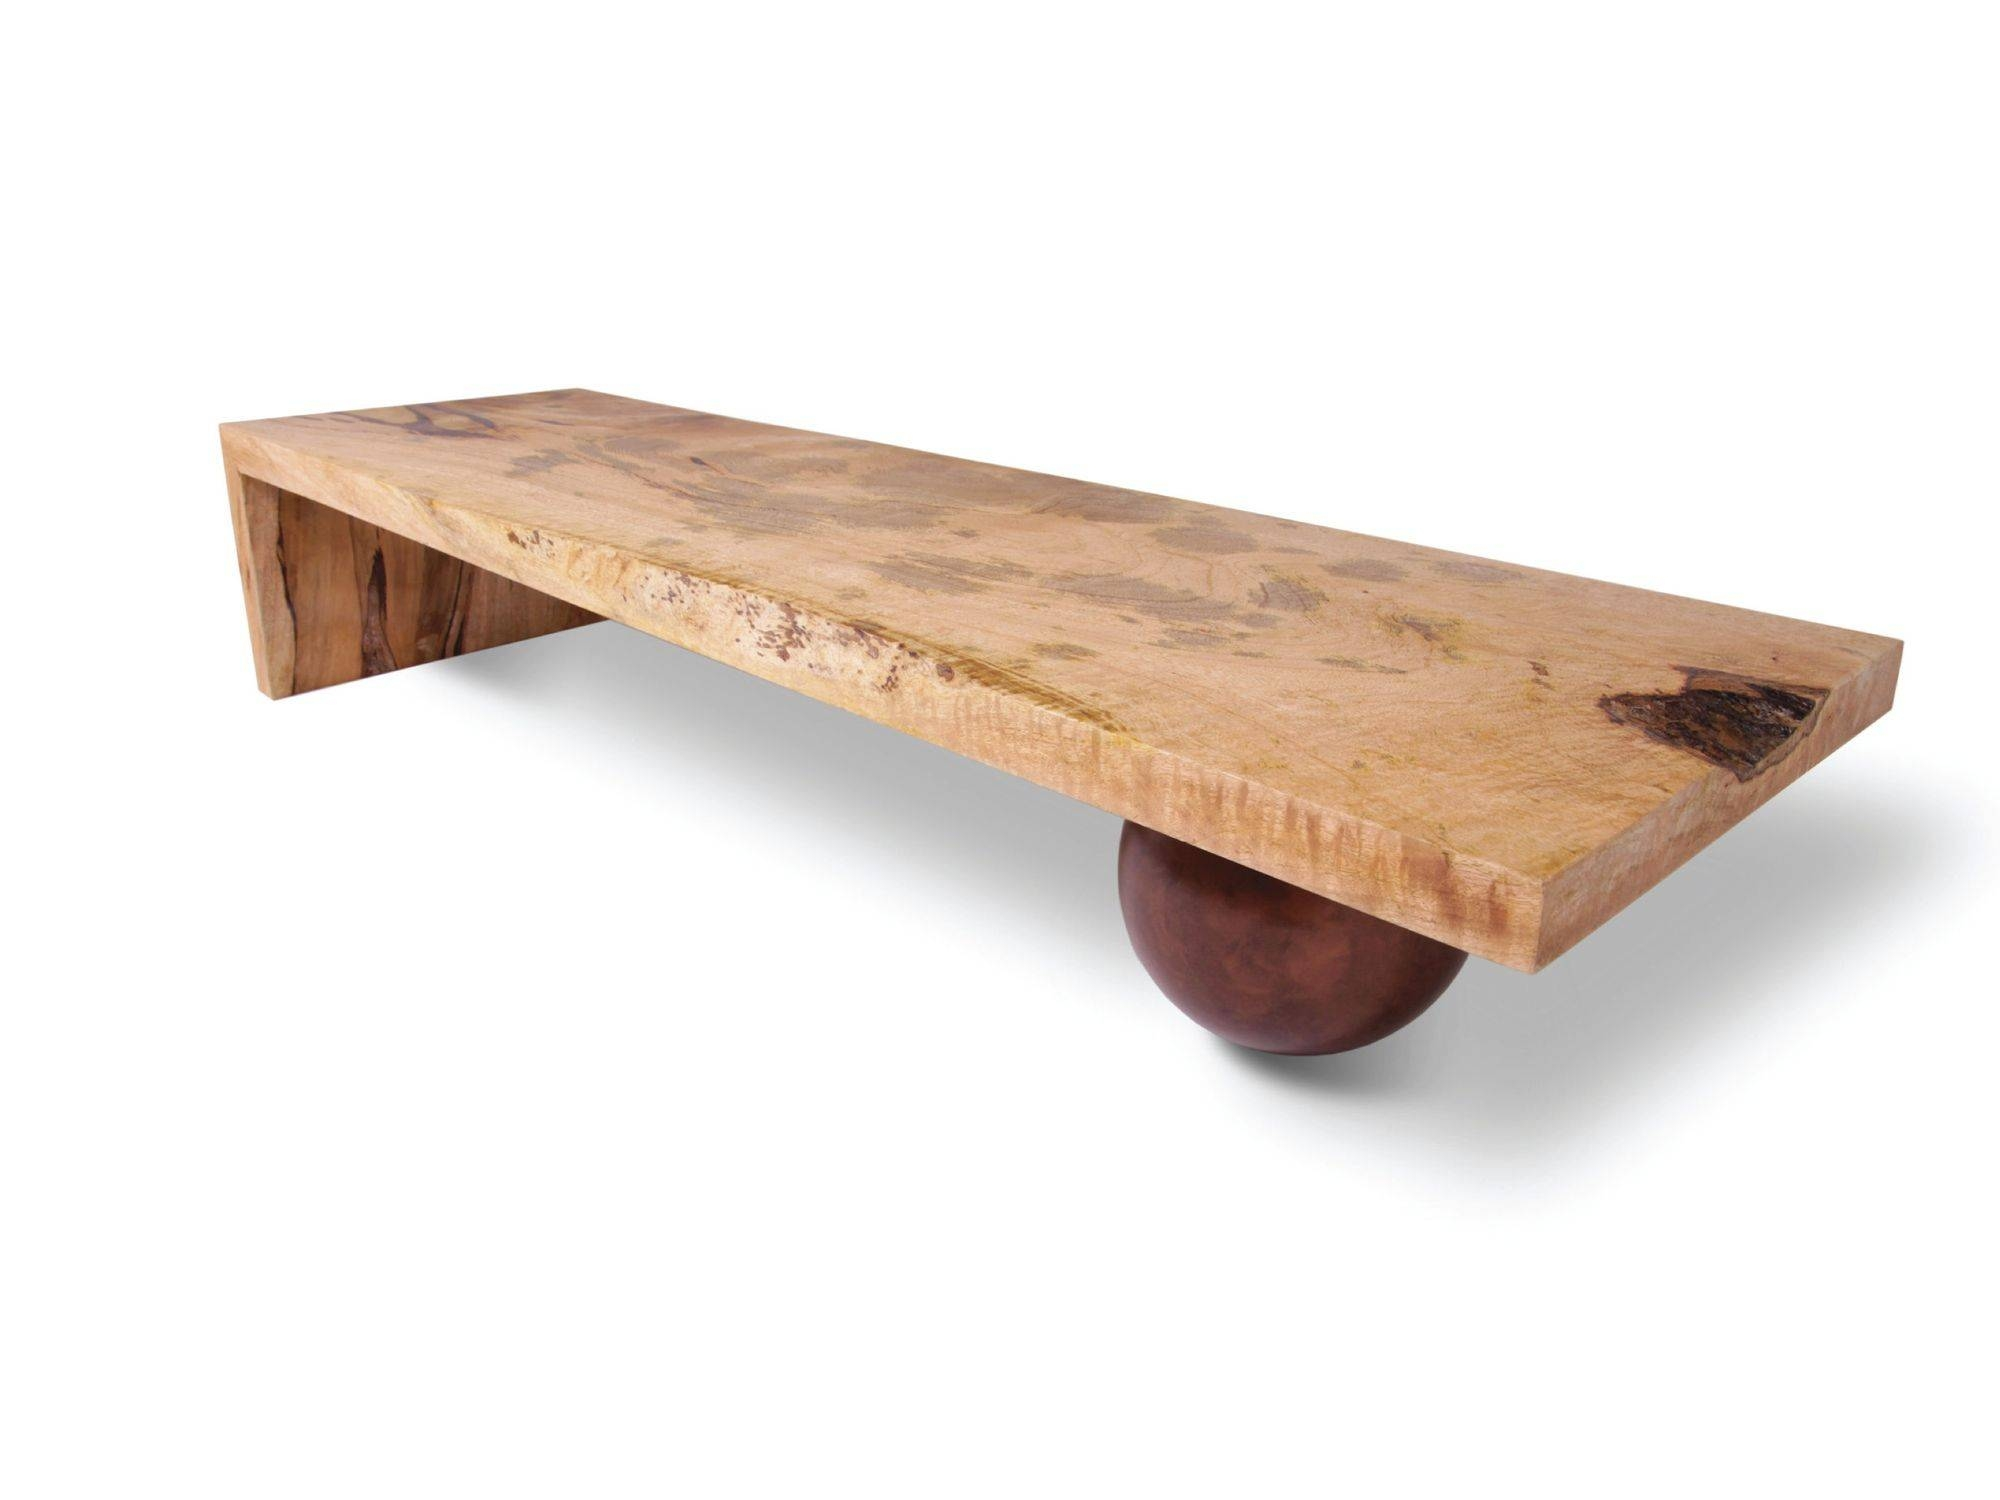 Mesmerizing Low Square Unpainted Reclaimed Wood Coffee Table With within Low Wood Coffee Tables (Image 13 of 15)